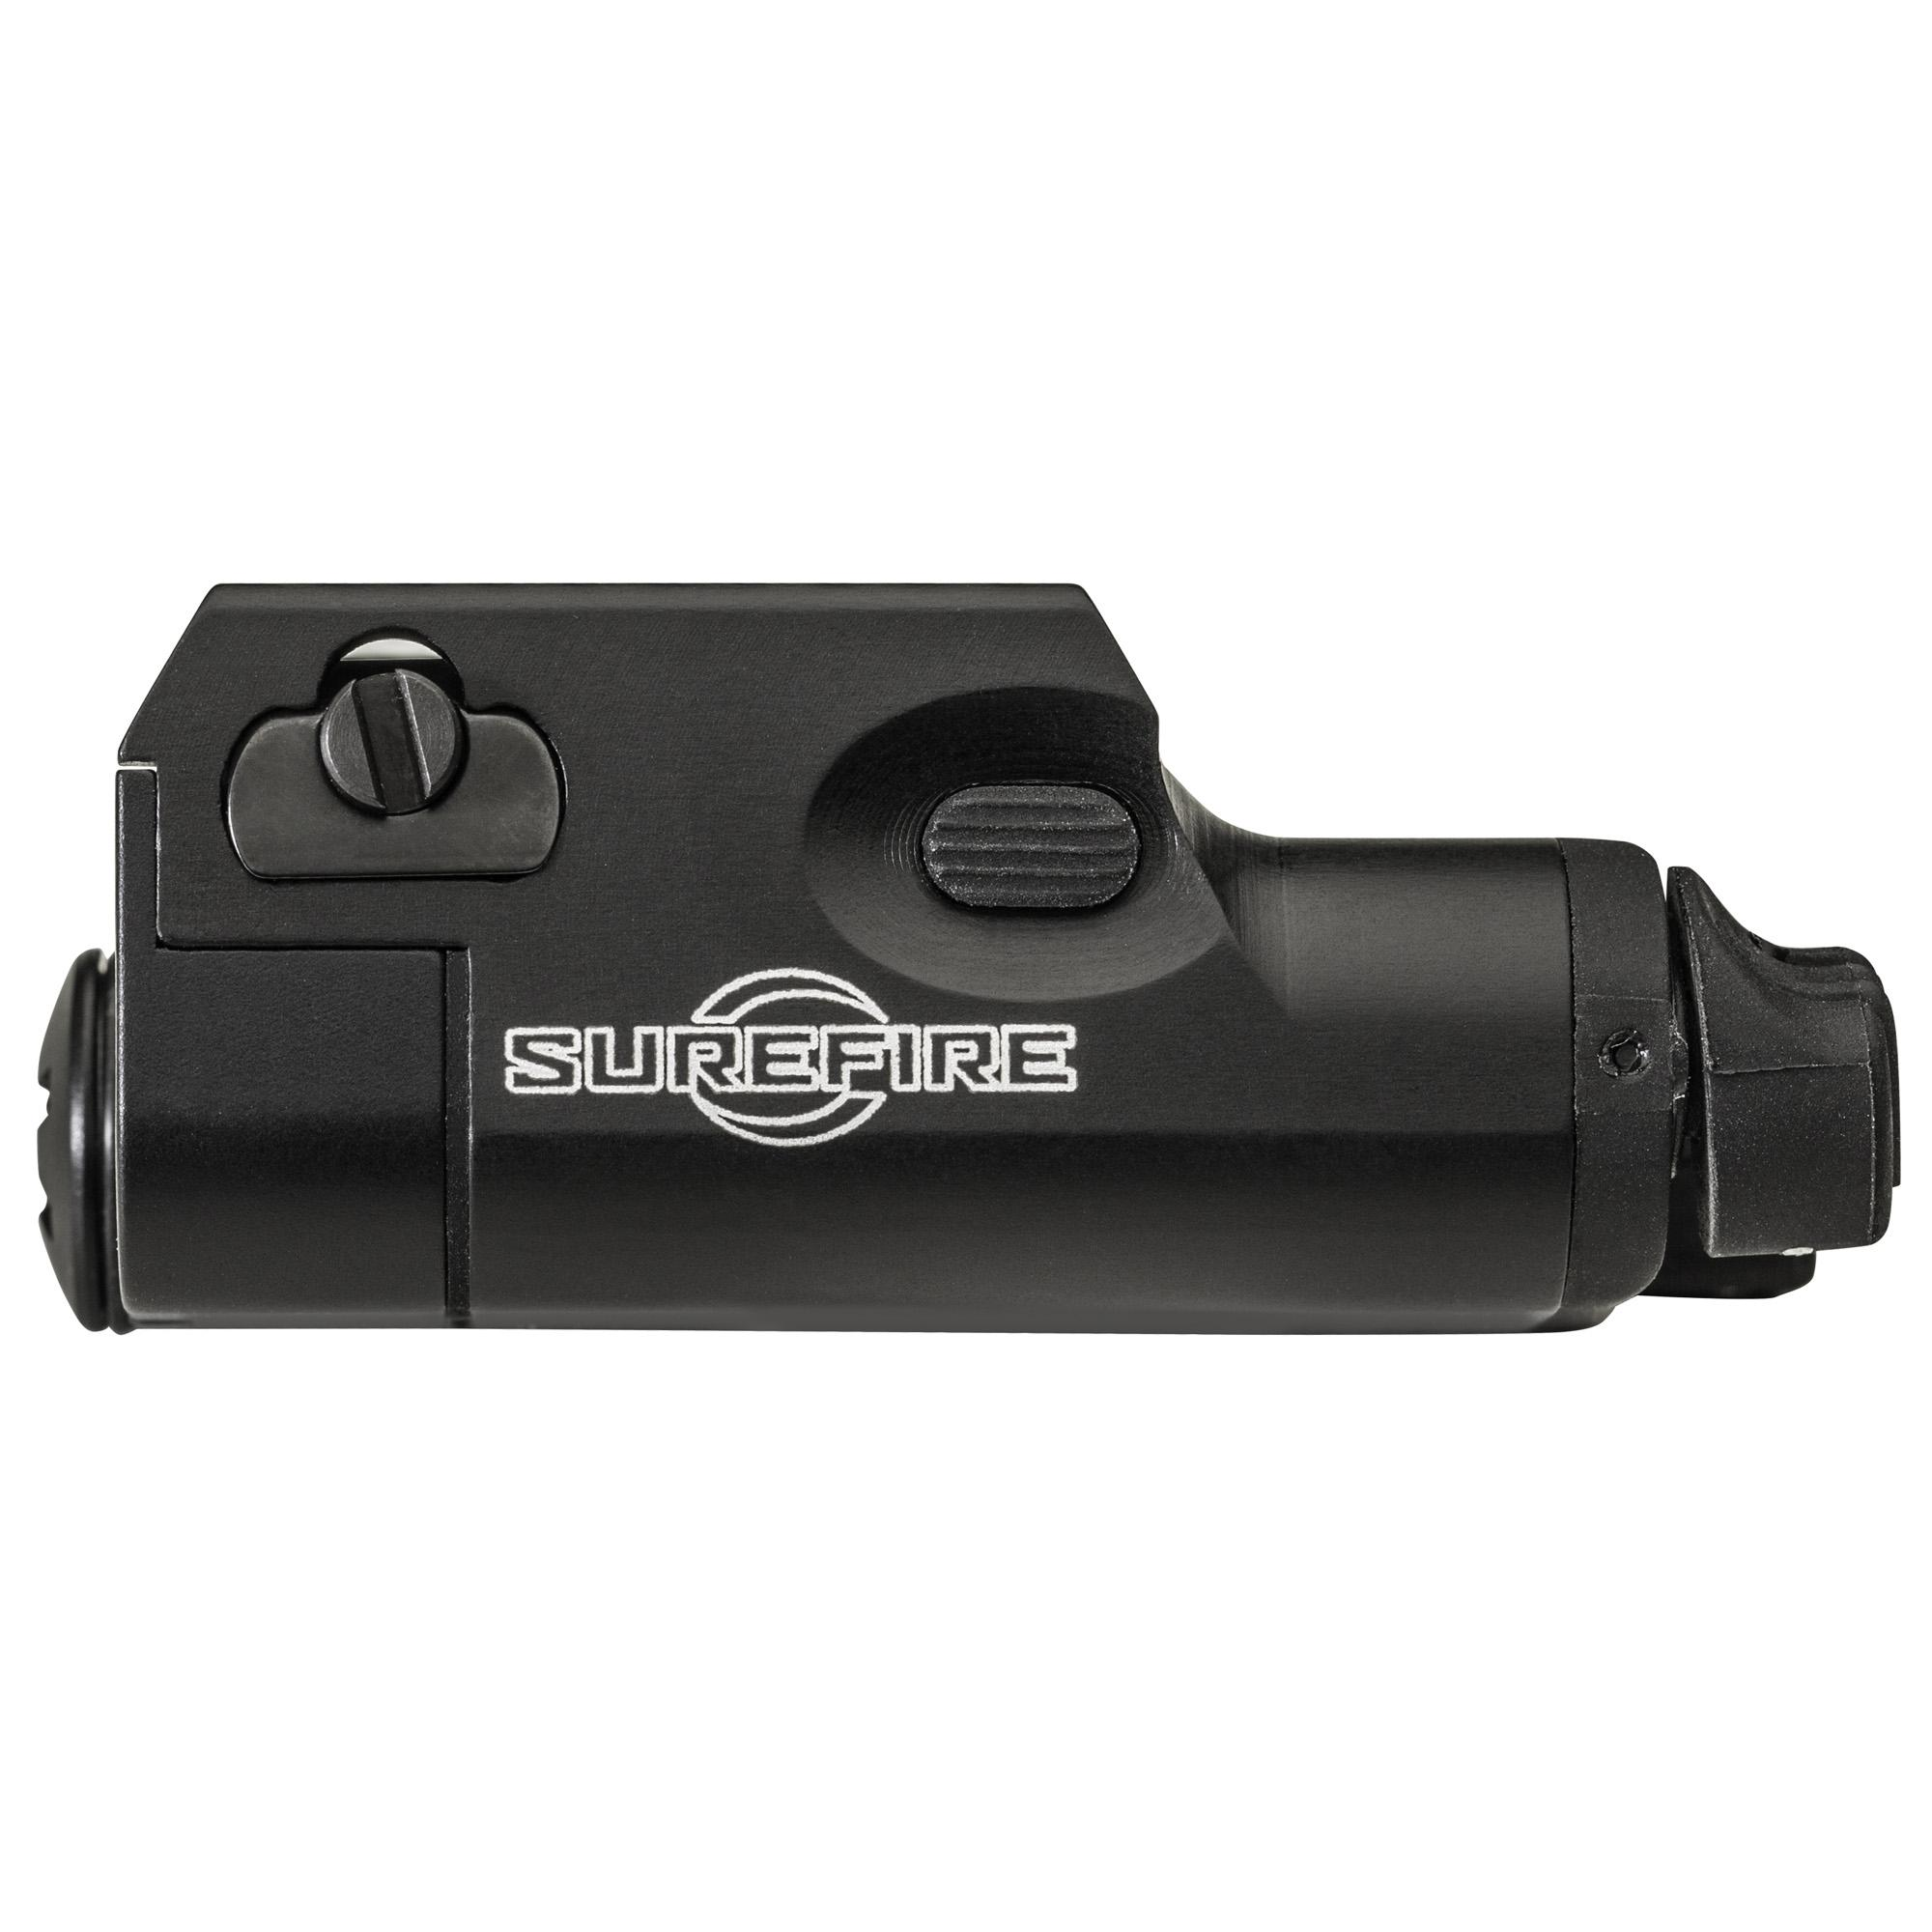 Surefire Xc1 Cmp Pistol Light 300lum XC1-B Photo 3